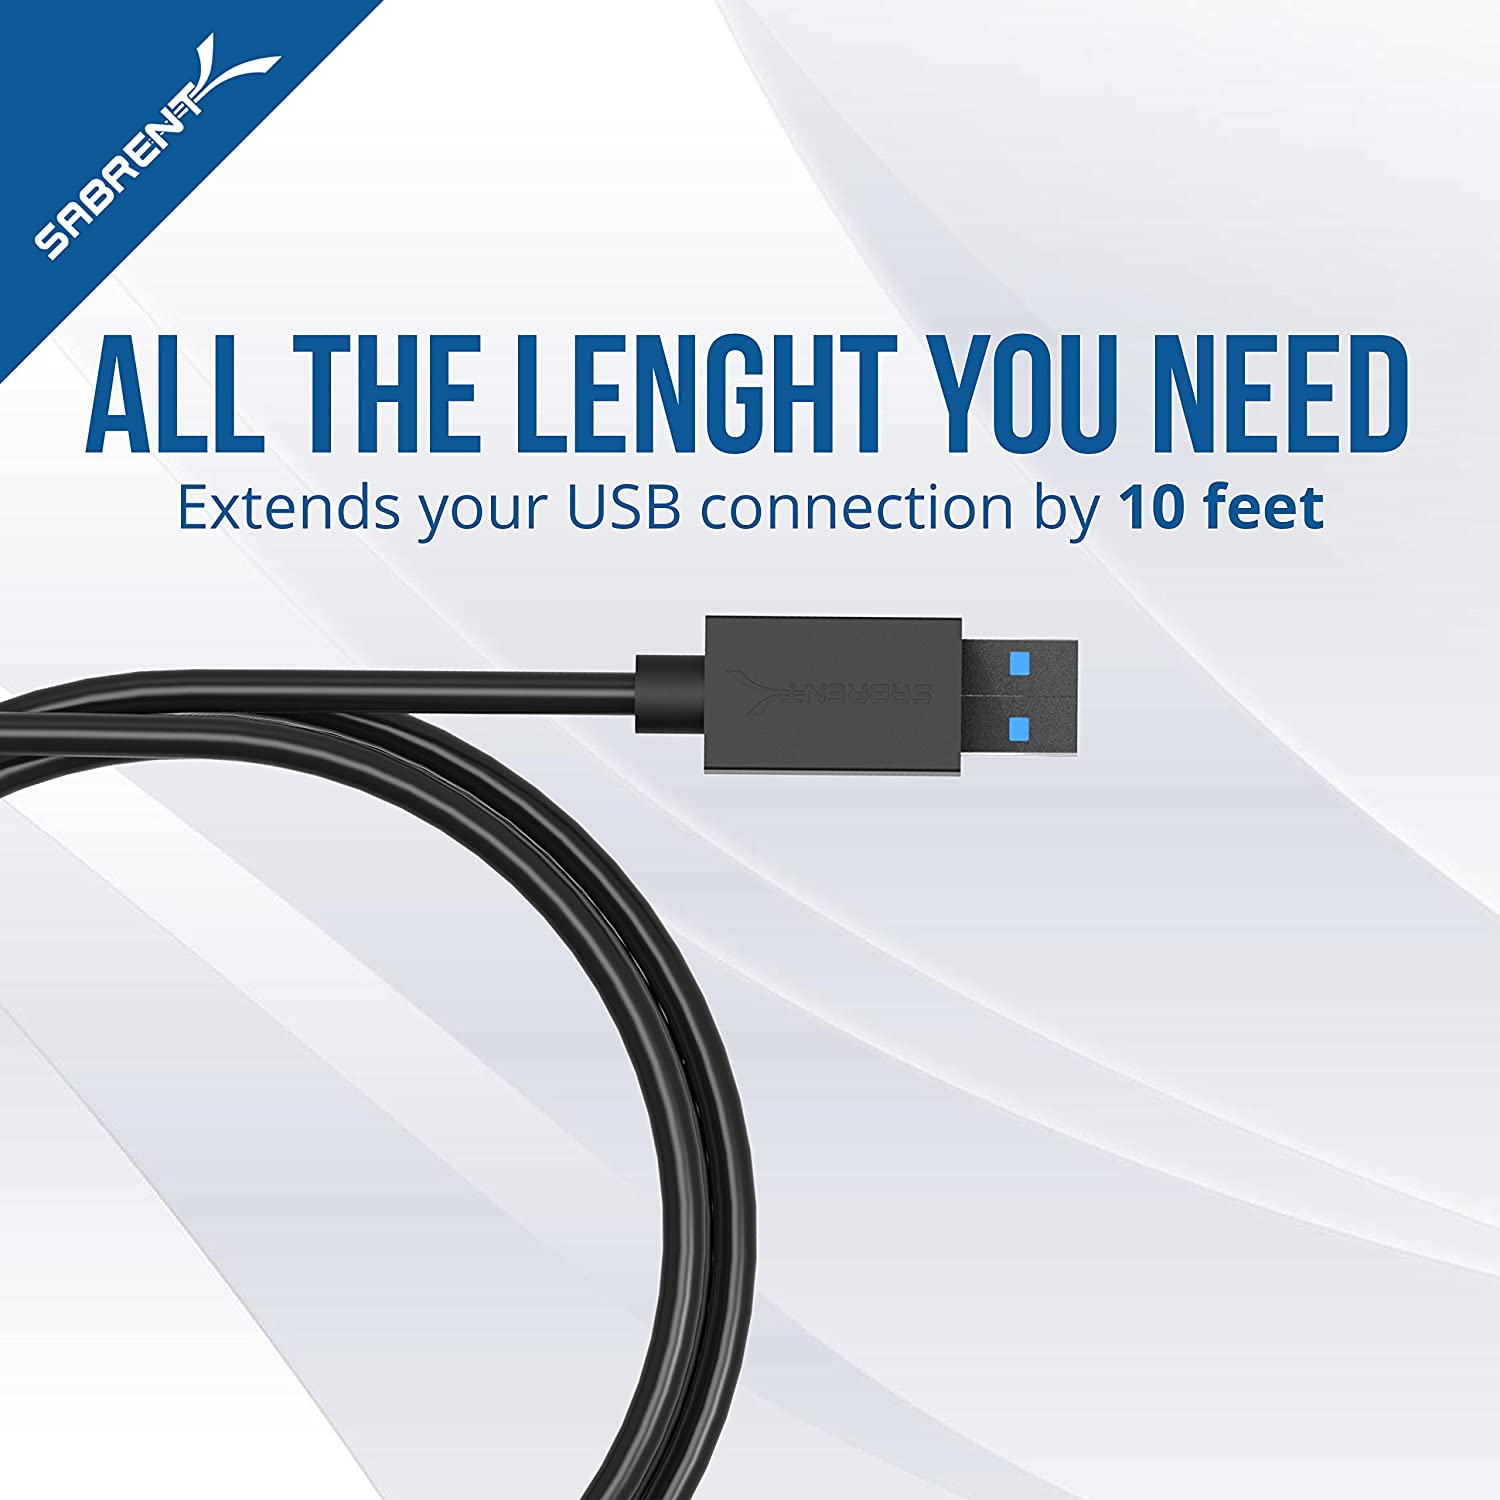 Sabrent USB 3.0 Male to Female Extension Cable - 10 Feet (CB-3010)